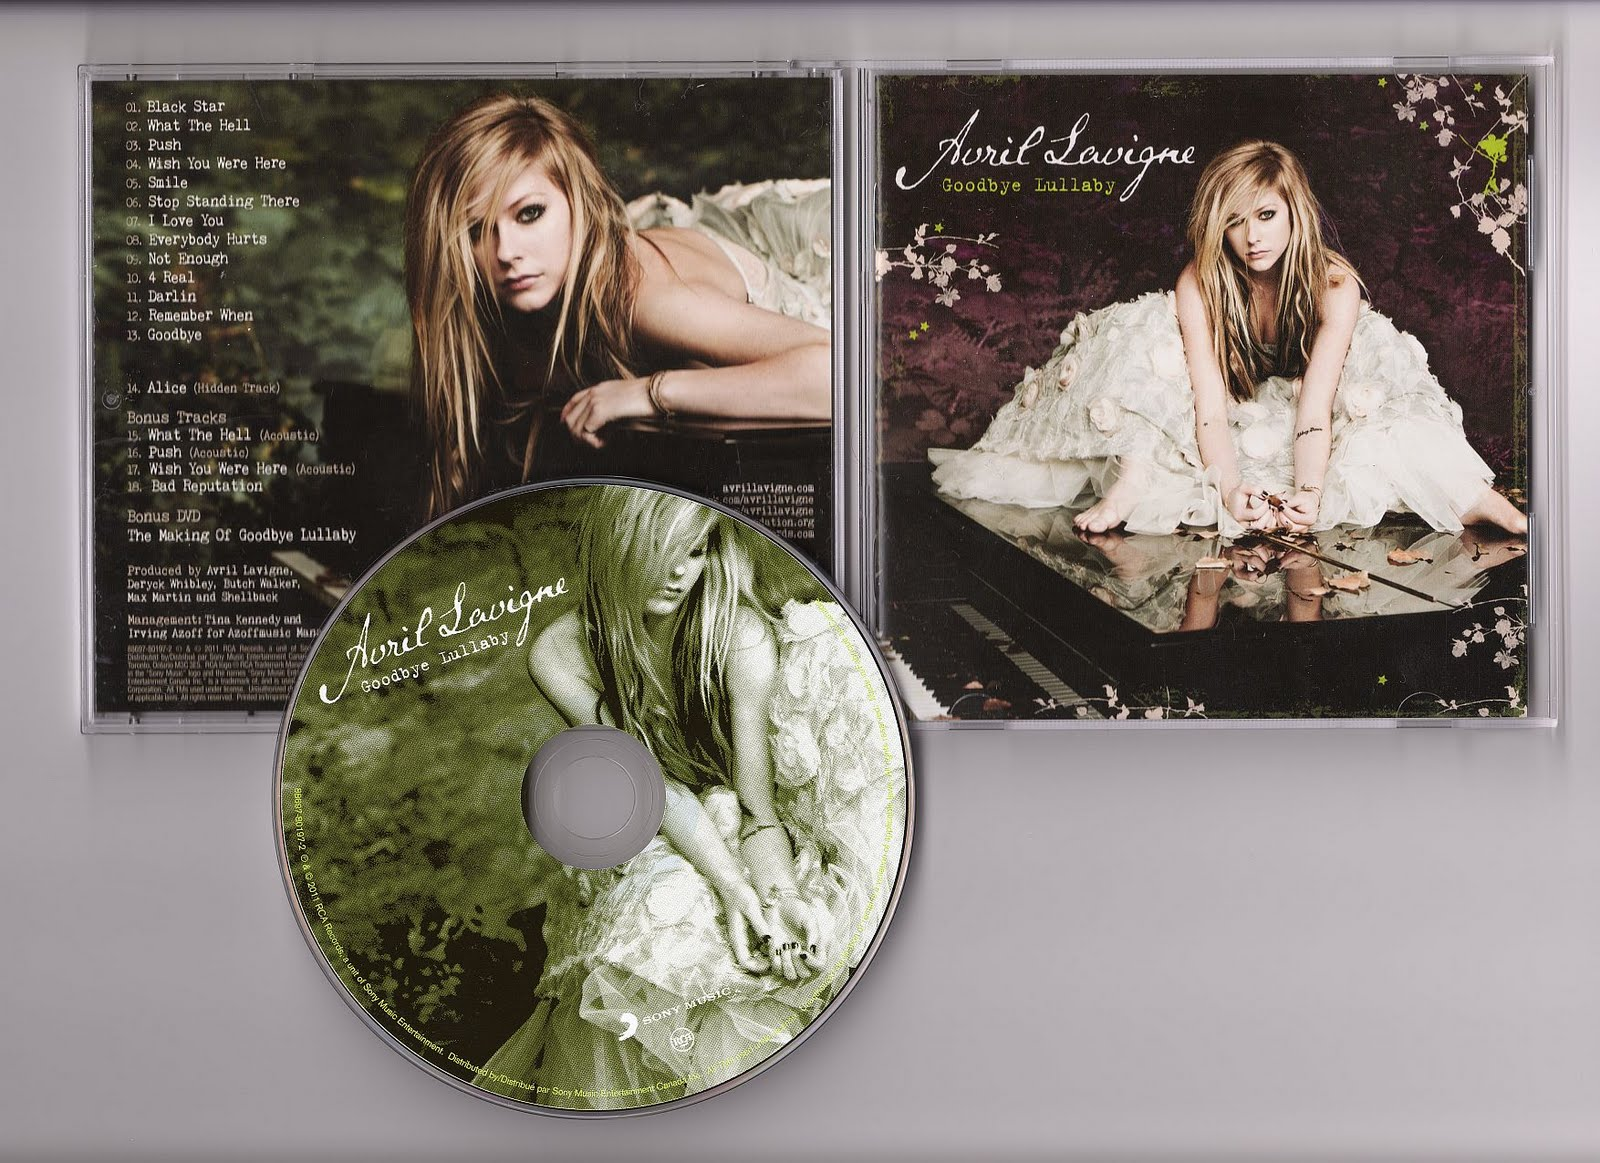 http://2.bp.blogspot.com/-3MVUuxOxNgA/TYhPrM3jXBI/AAAAAAAAIho/ZpxYRE2eWQA/s1600/00-avril_lavigne-goodbye_lullaby-%2528deluxe_edition%2529-%2528trusted_retail%2529-2011-scan.jpg